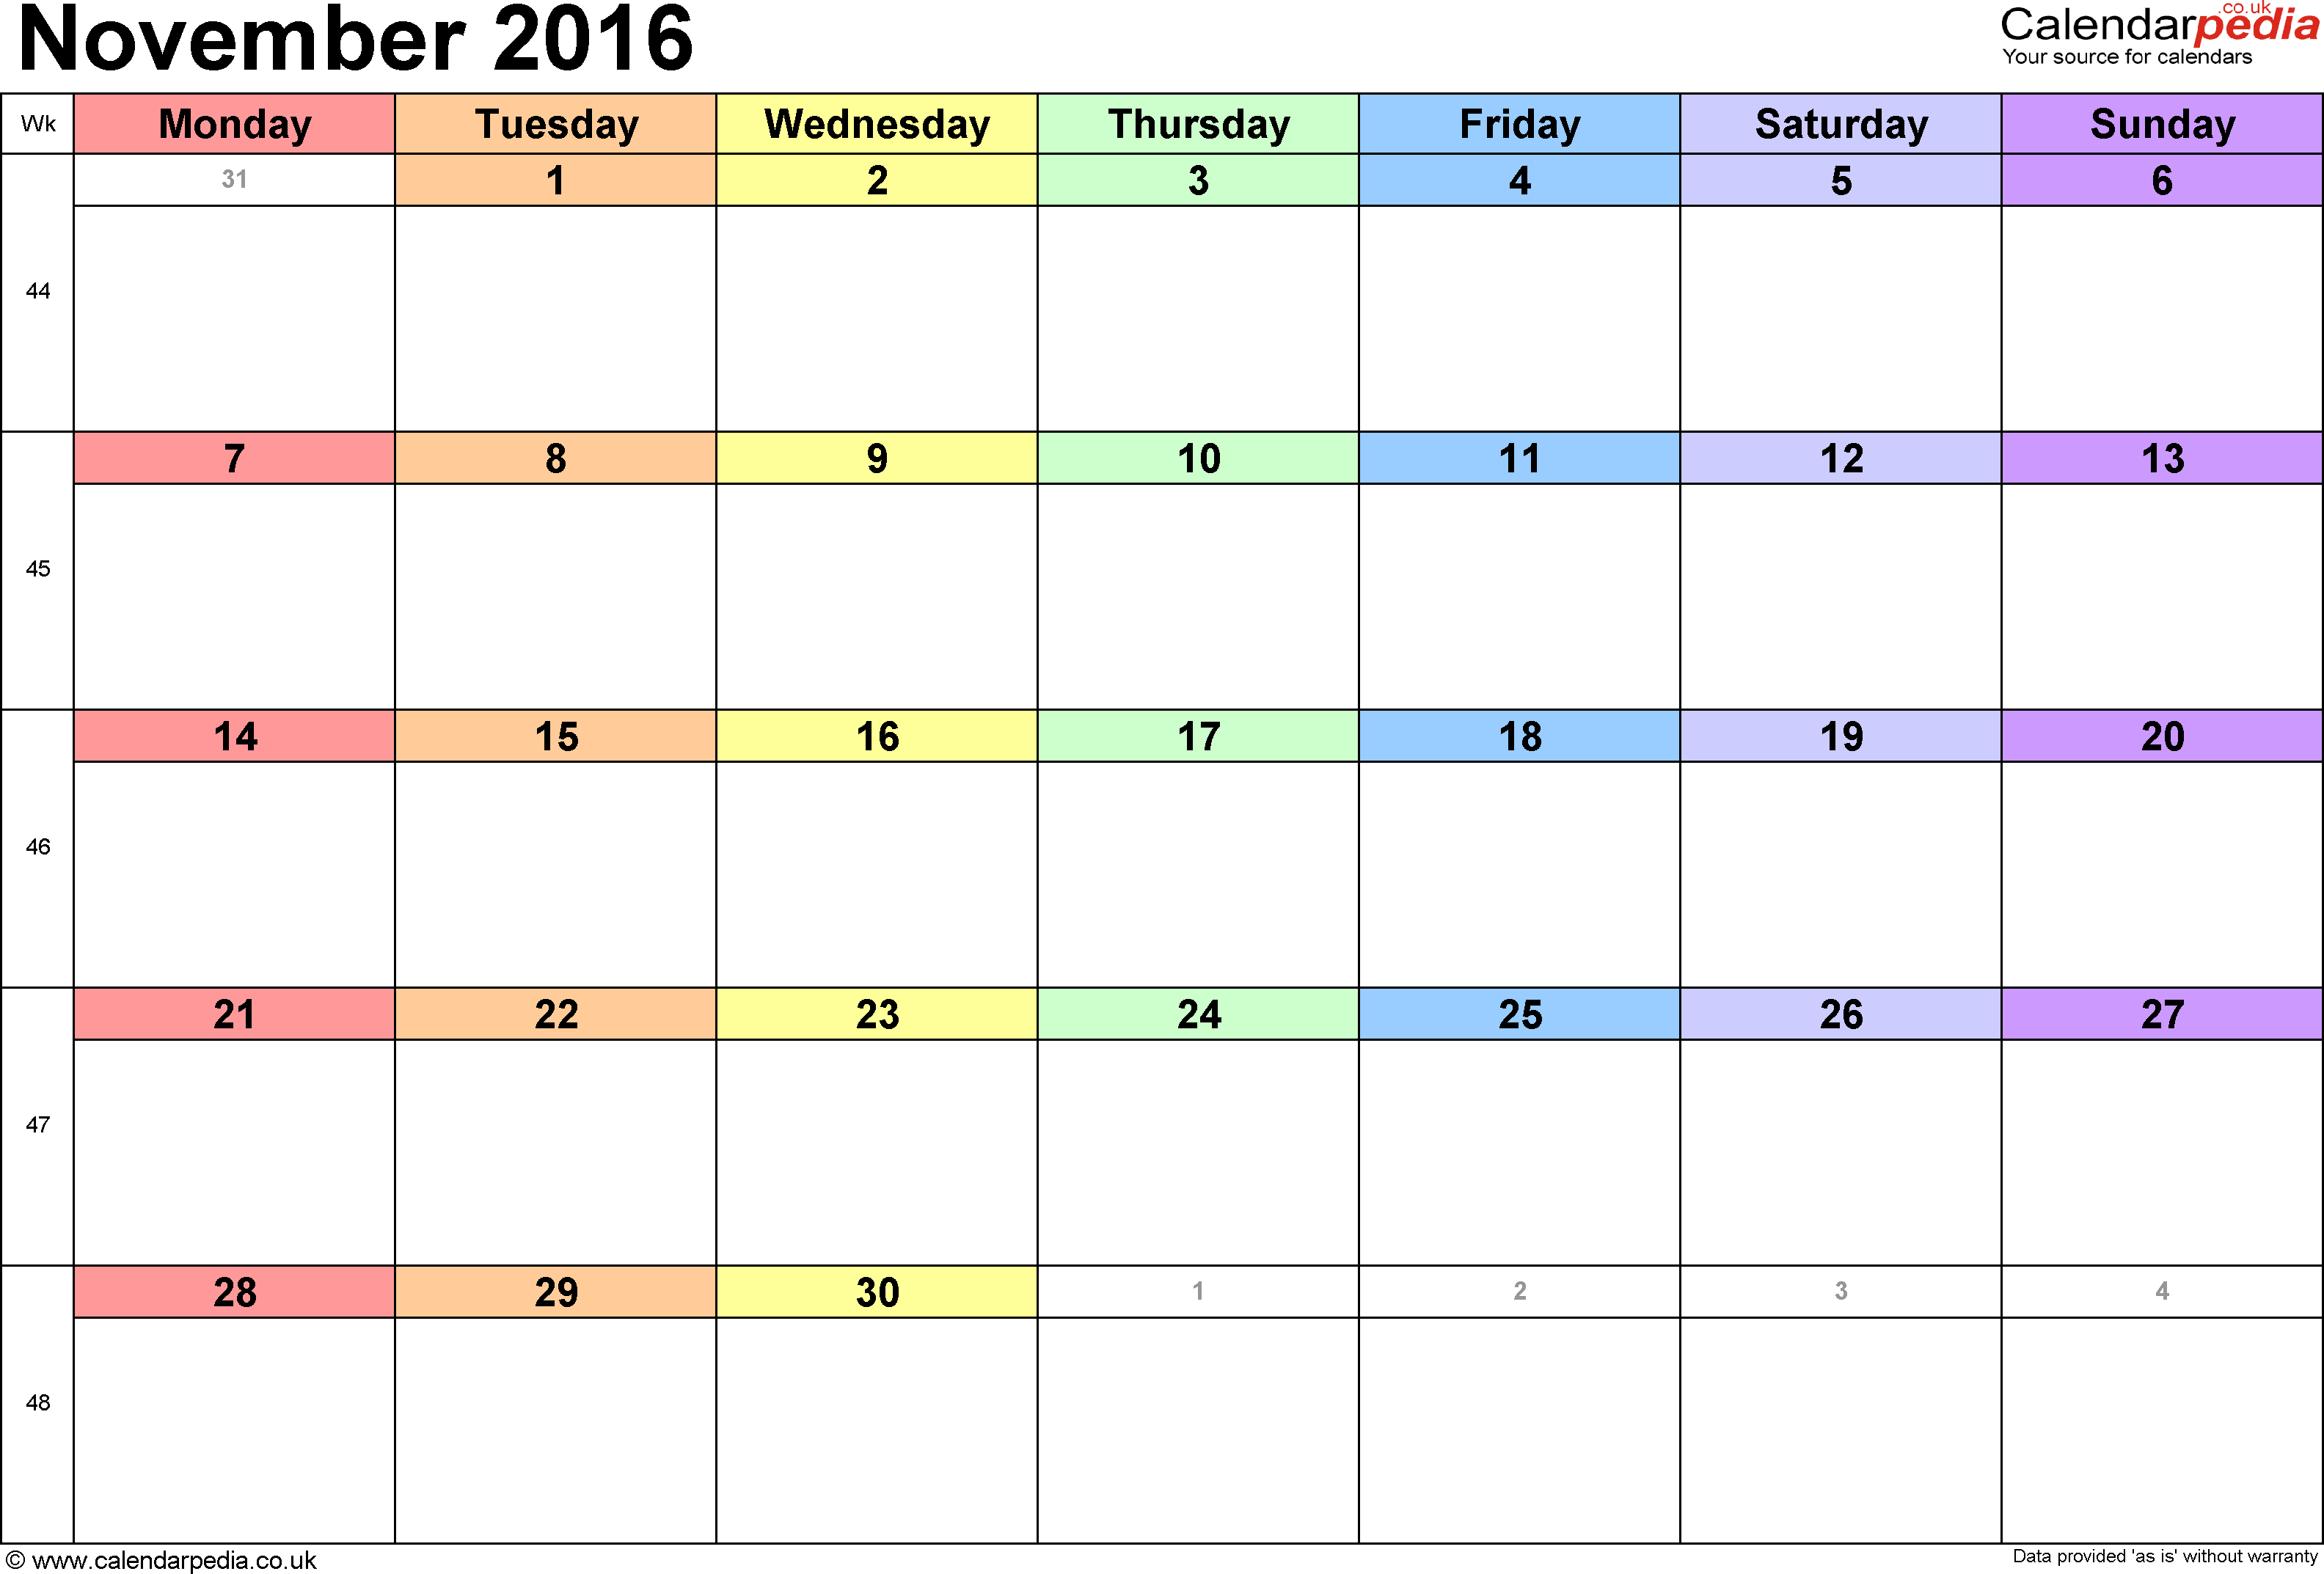 Calendar November 2016, landscape orientation, 1 page, with UK bank holidays and week numbers